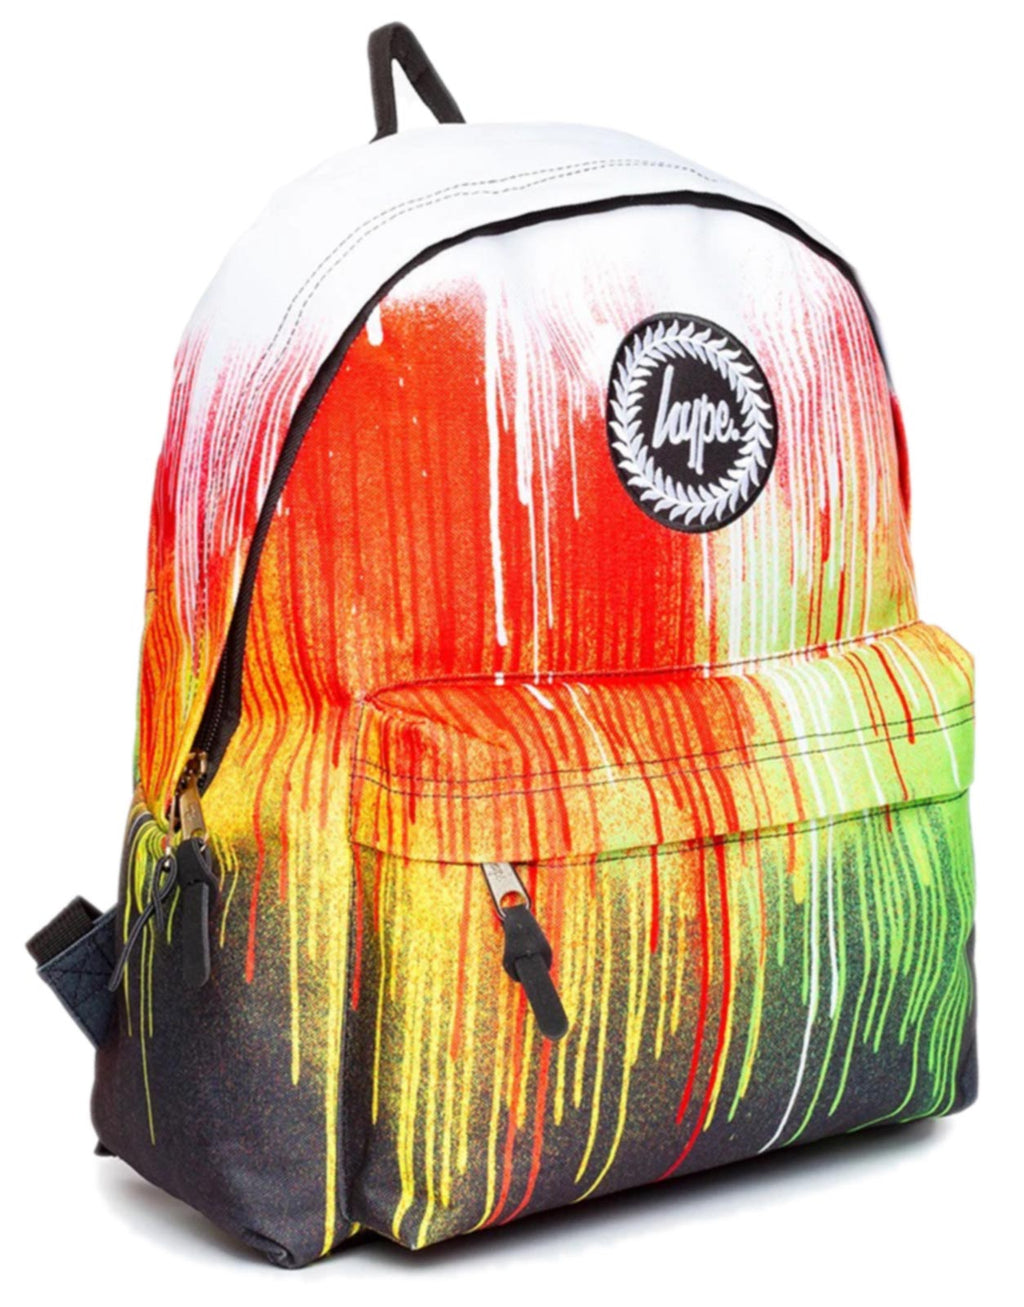 Hype Rainbow Drips Backpack Bag Multi